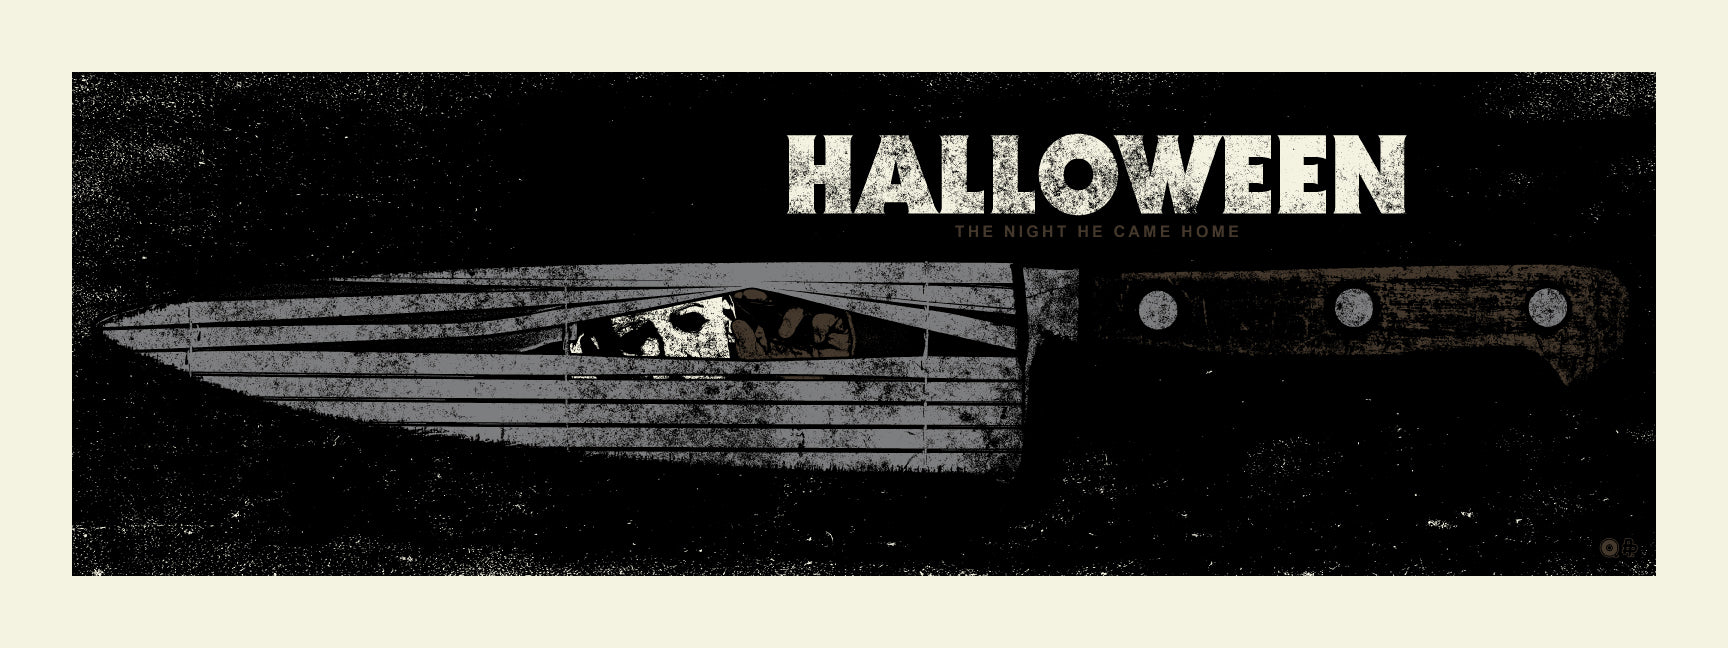 Halloween Knife Variant Print by Chris Garofalo